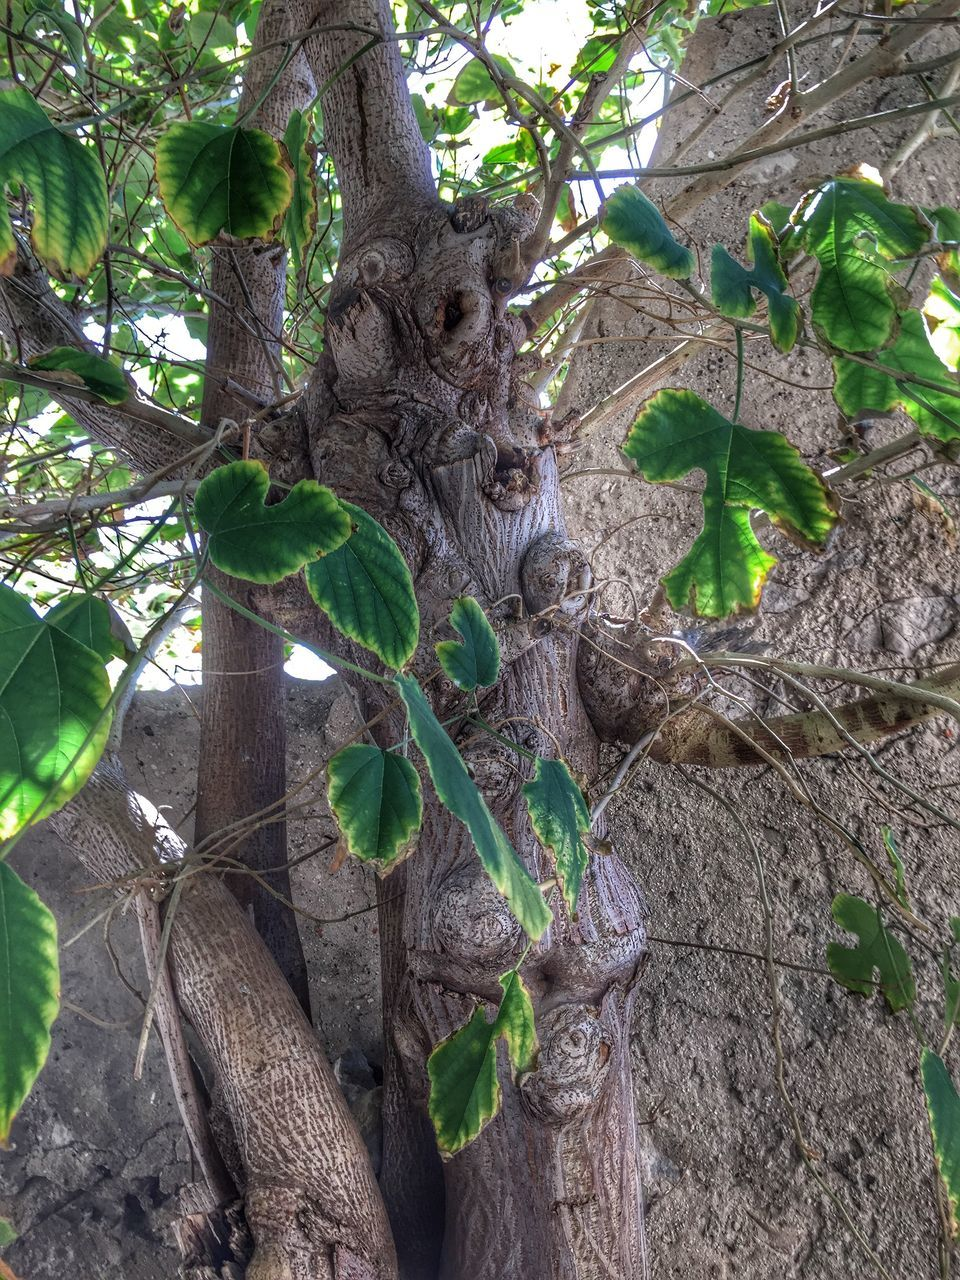 tree, growth, tree trunk, leaf, no people, green color, day, nature, branch, outdoors, low angle view, hanging, plant, beauty in nature, close-up, animal themes, mammal